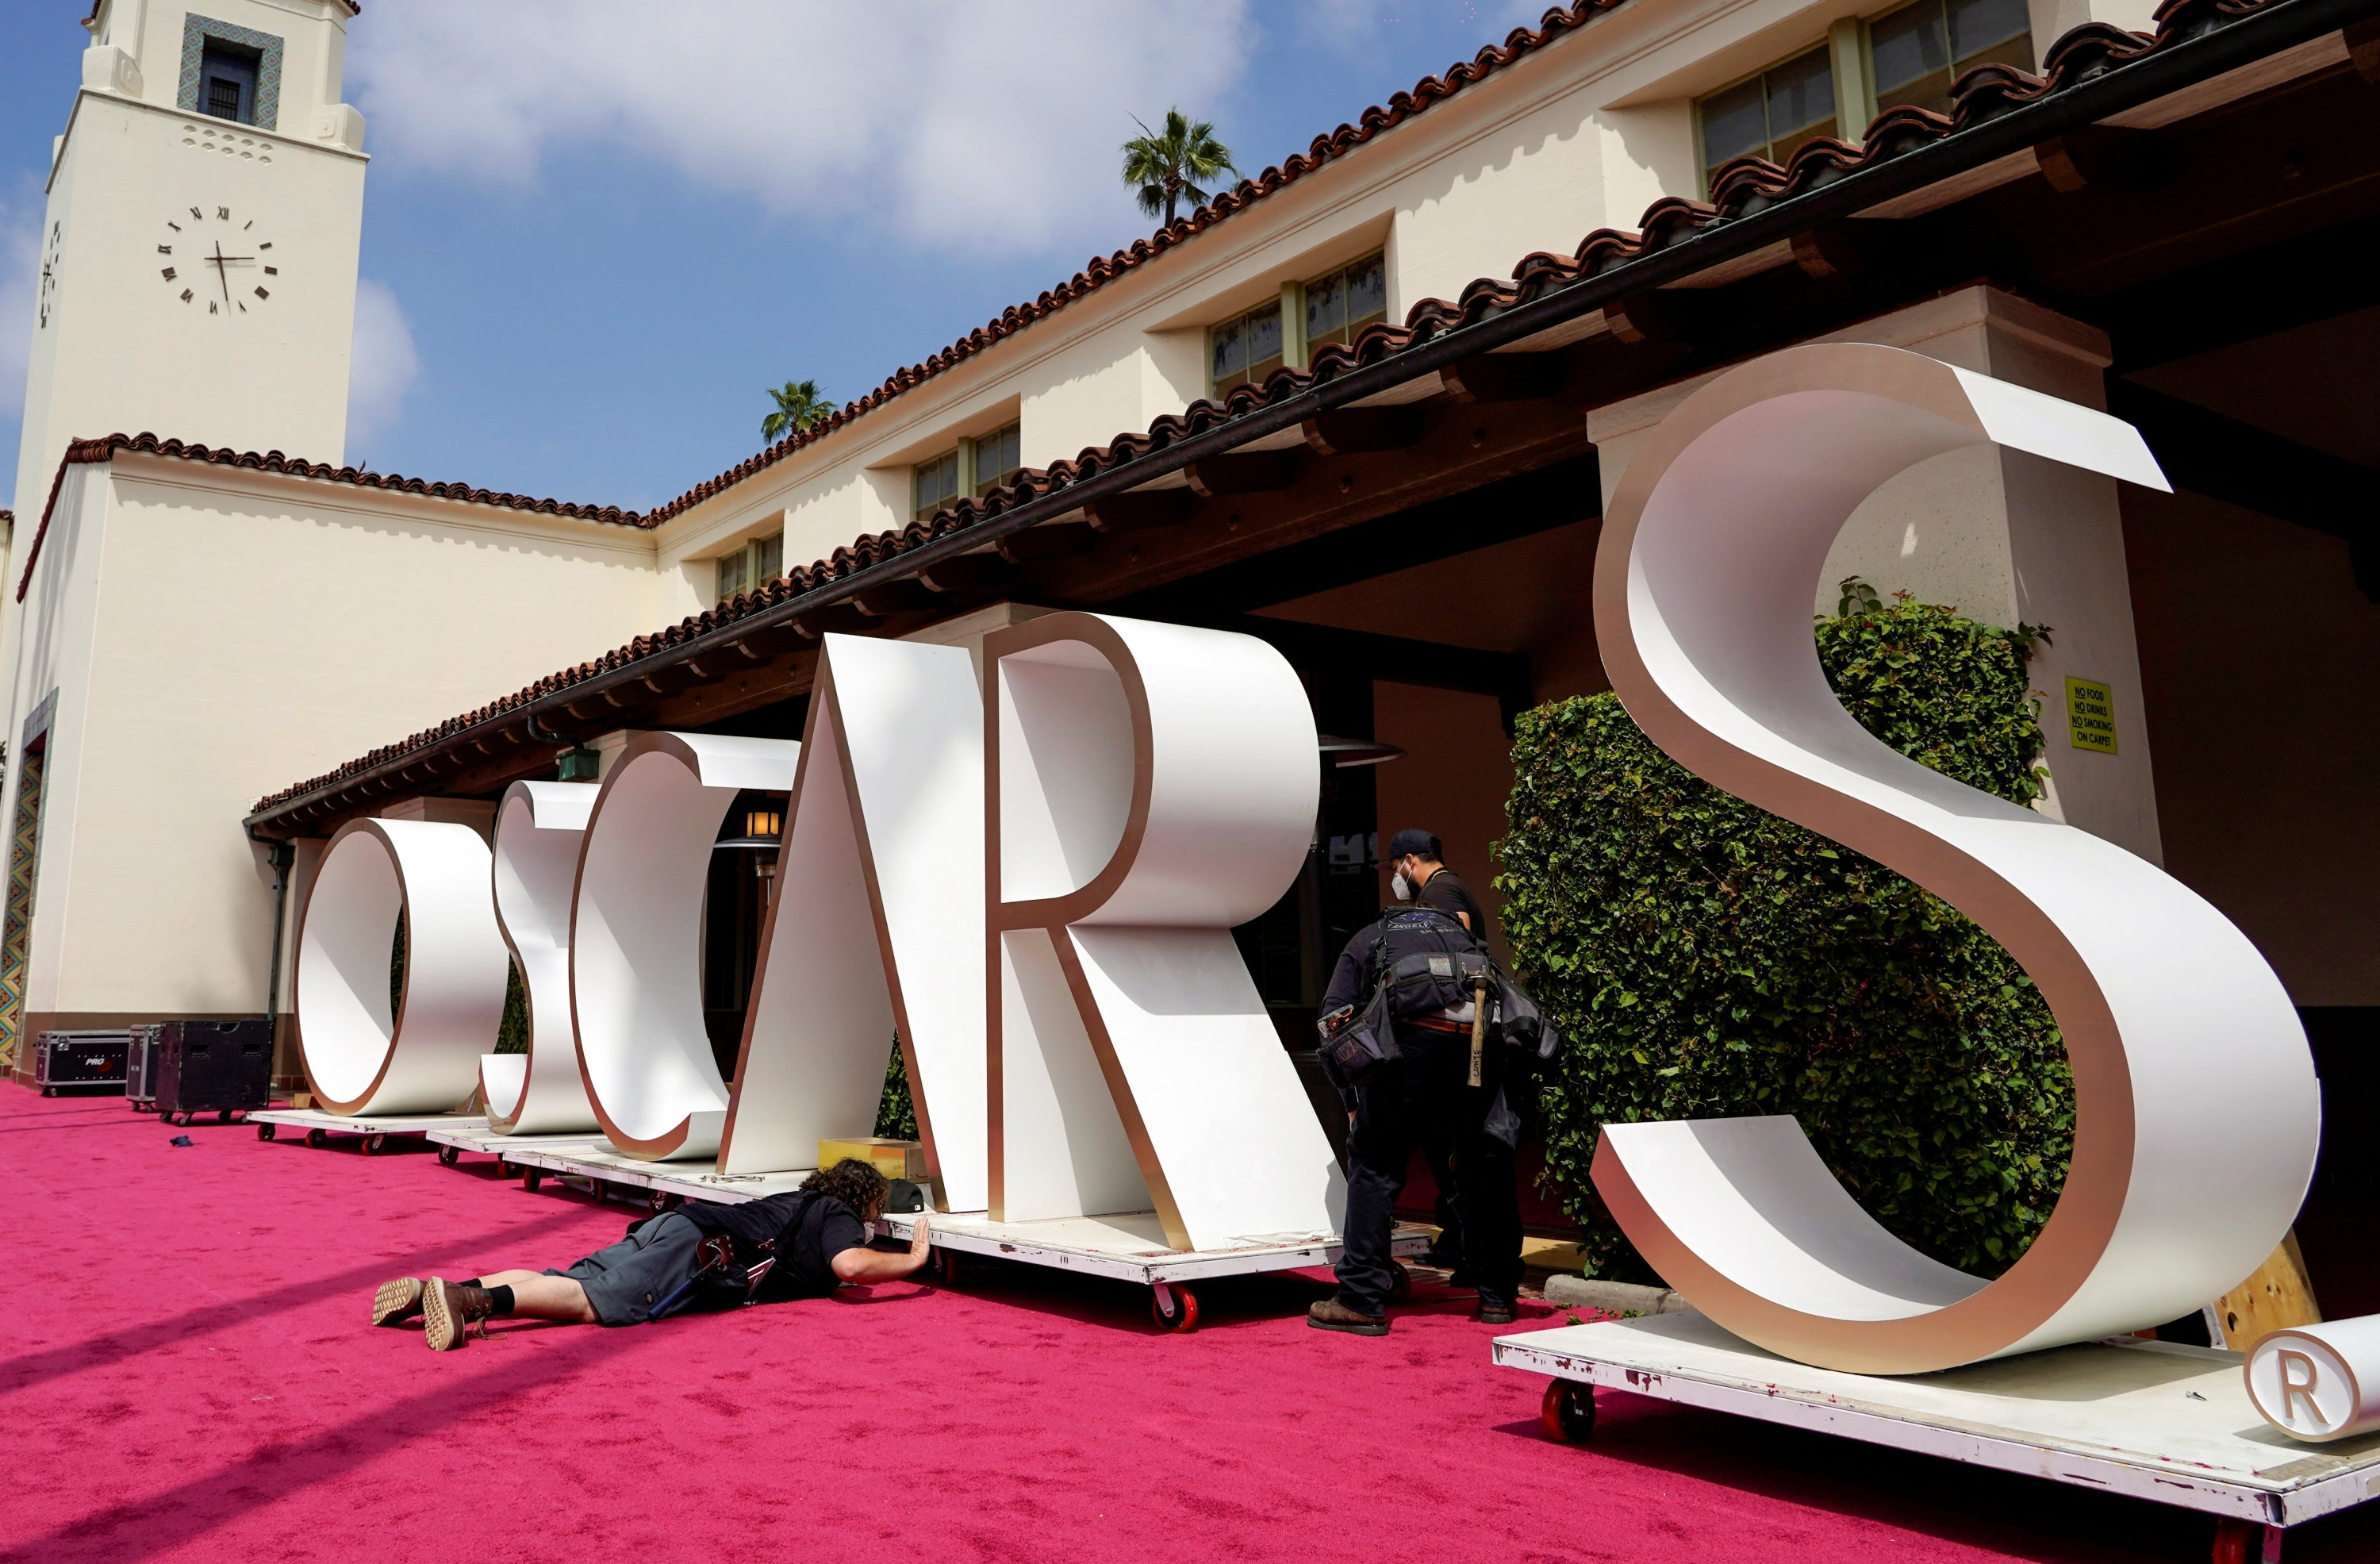 Crew members prepare a backdrop for the Oscars red carpet at Union Station, one of the locations for the 93rd Academy Awards in Los Angeles, California, U.S., April 24, 2021. (Reuters Photo)